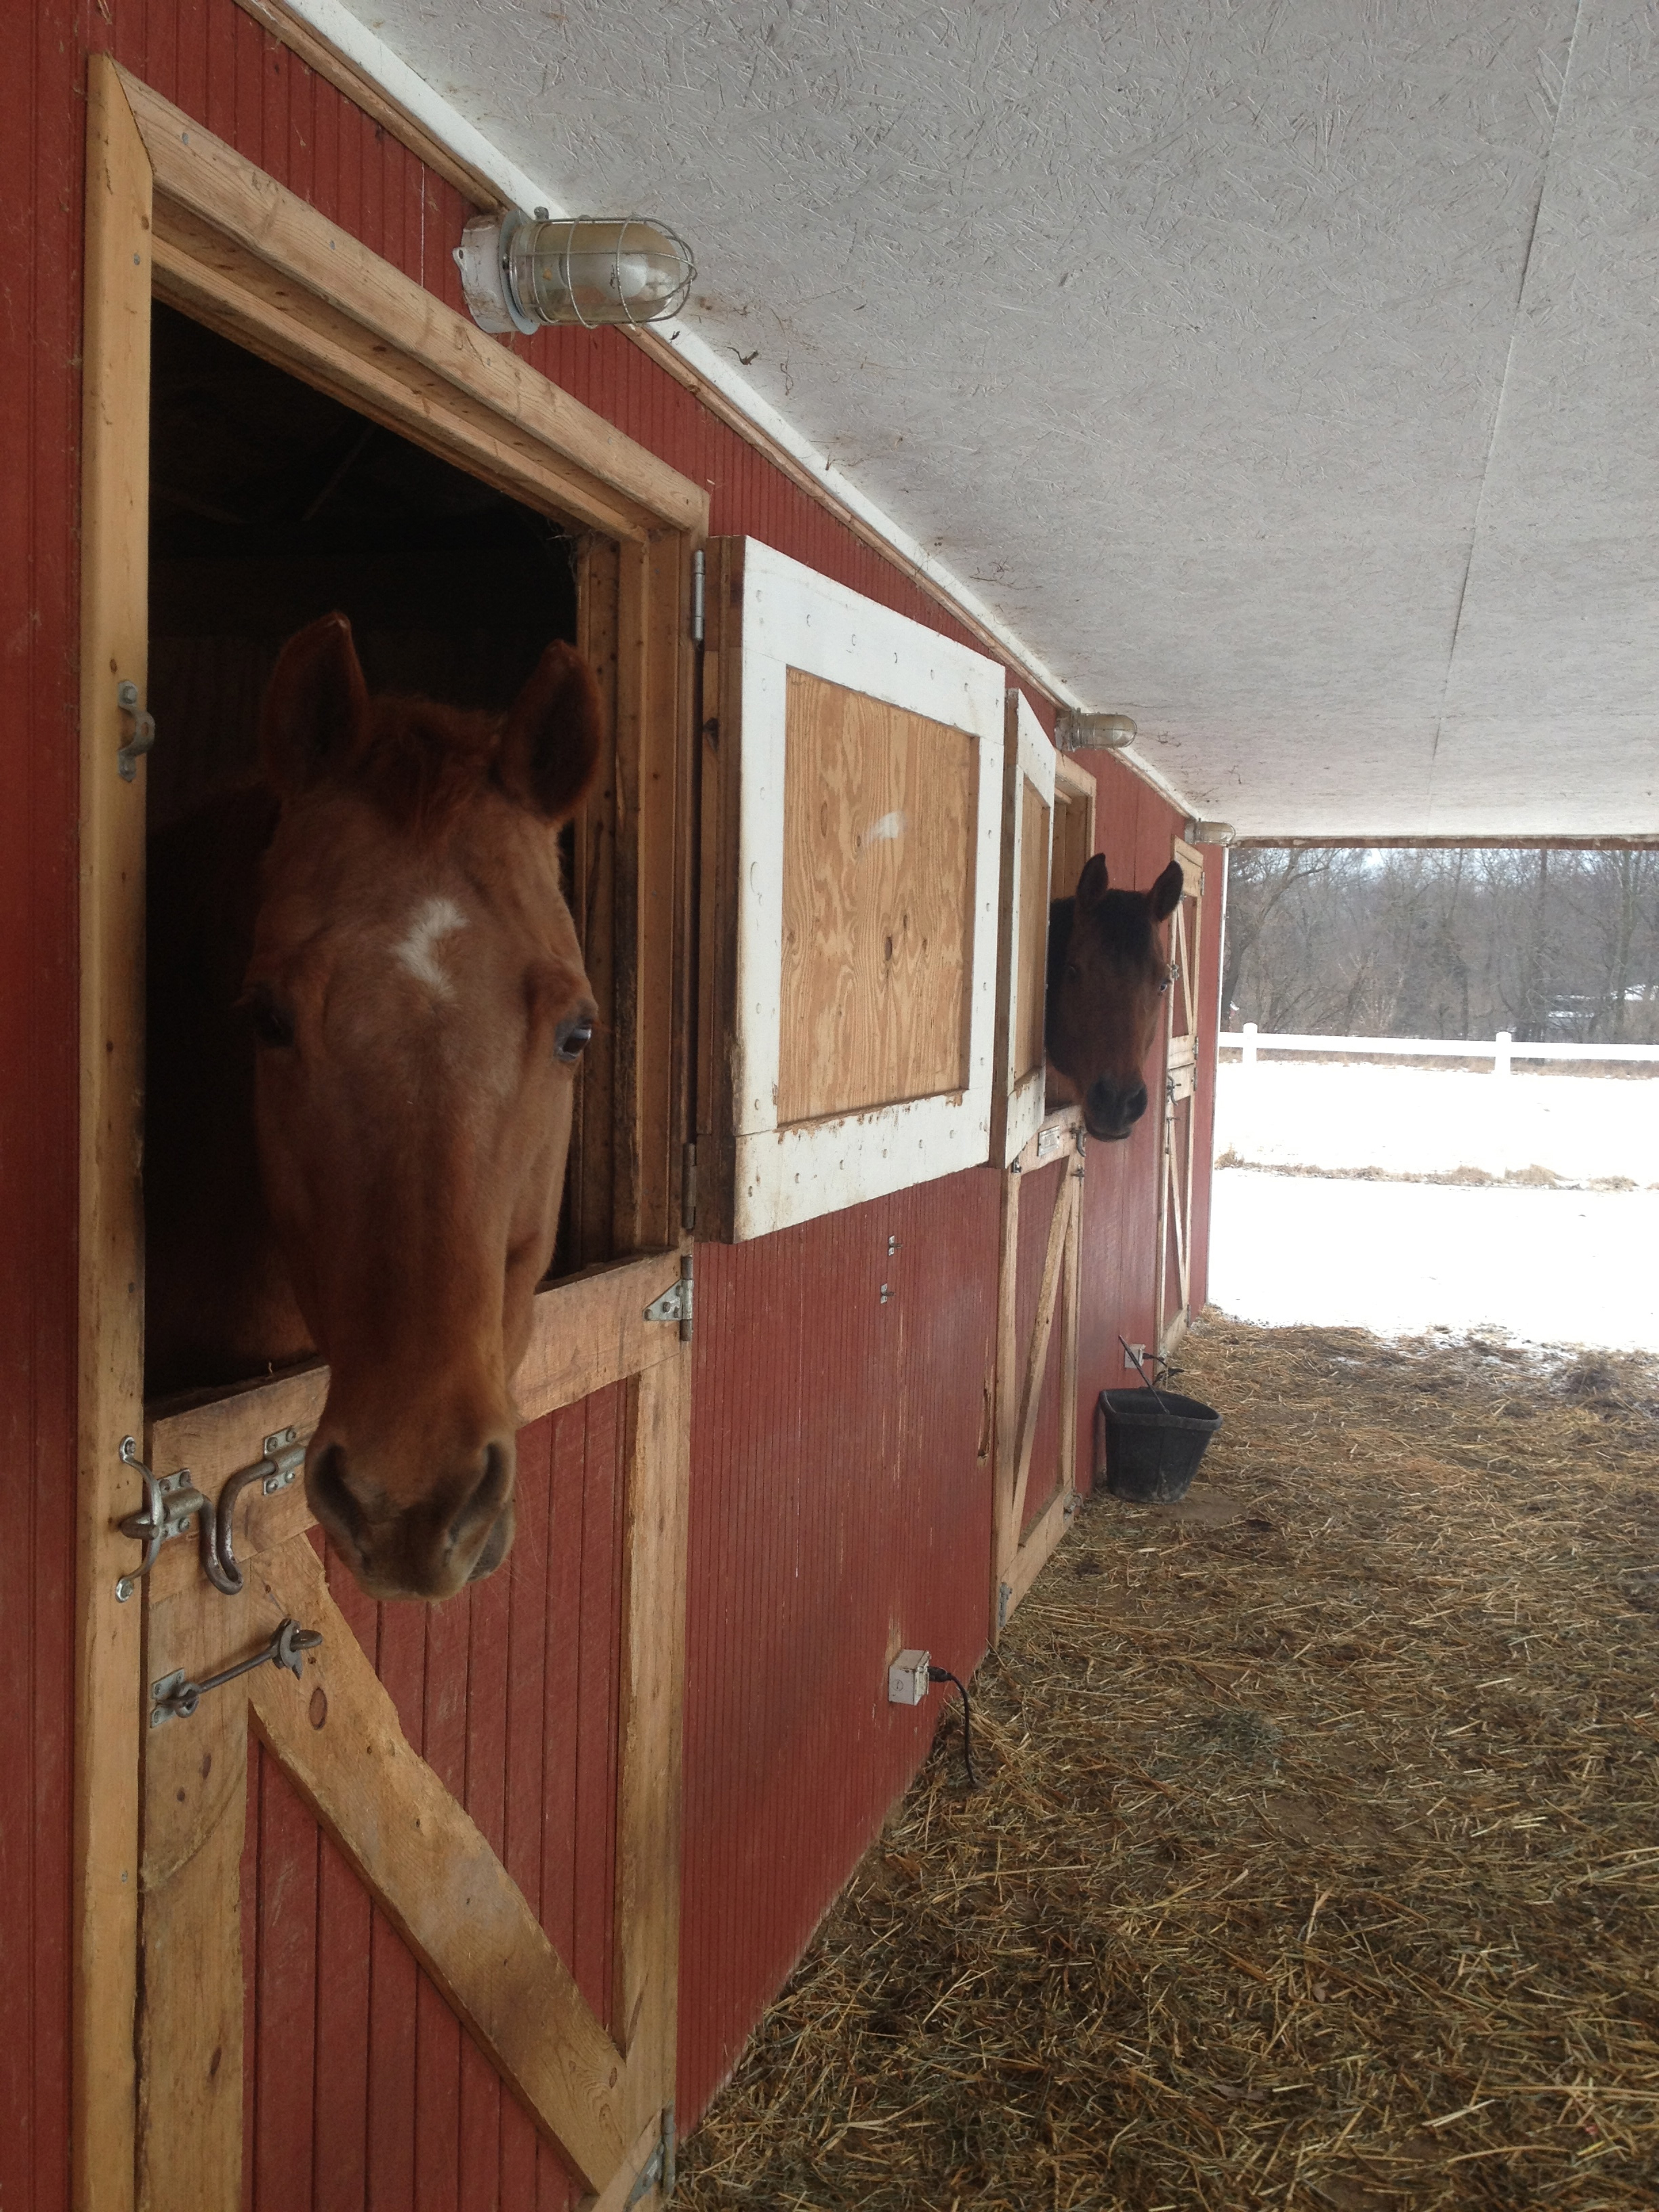 Tully and Drifter say good morning.